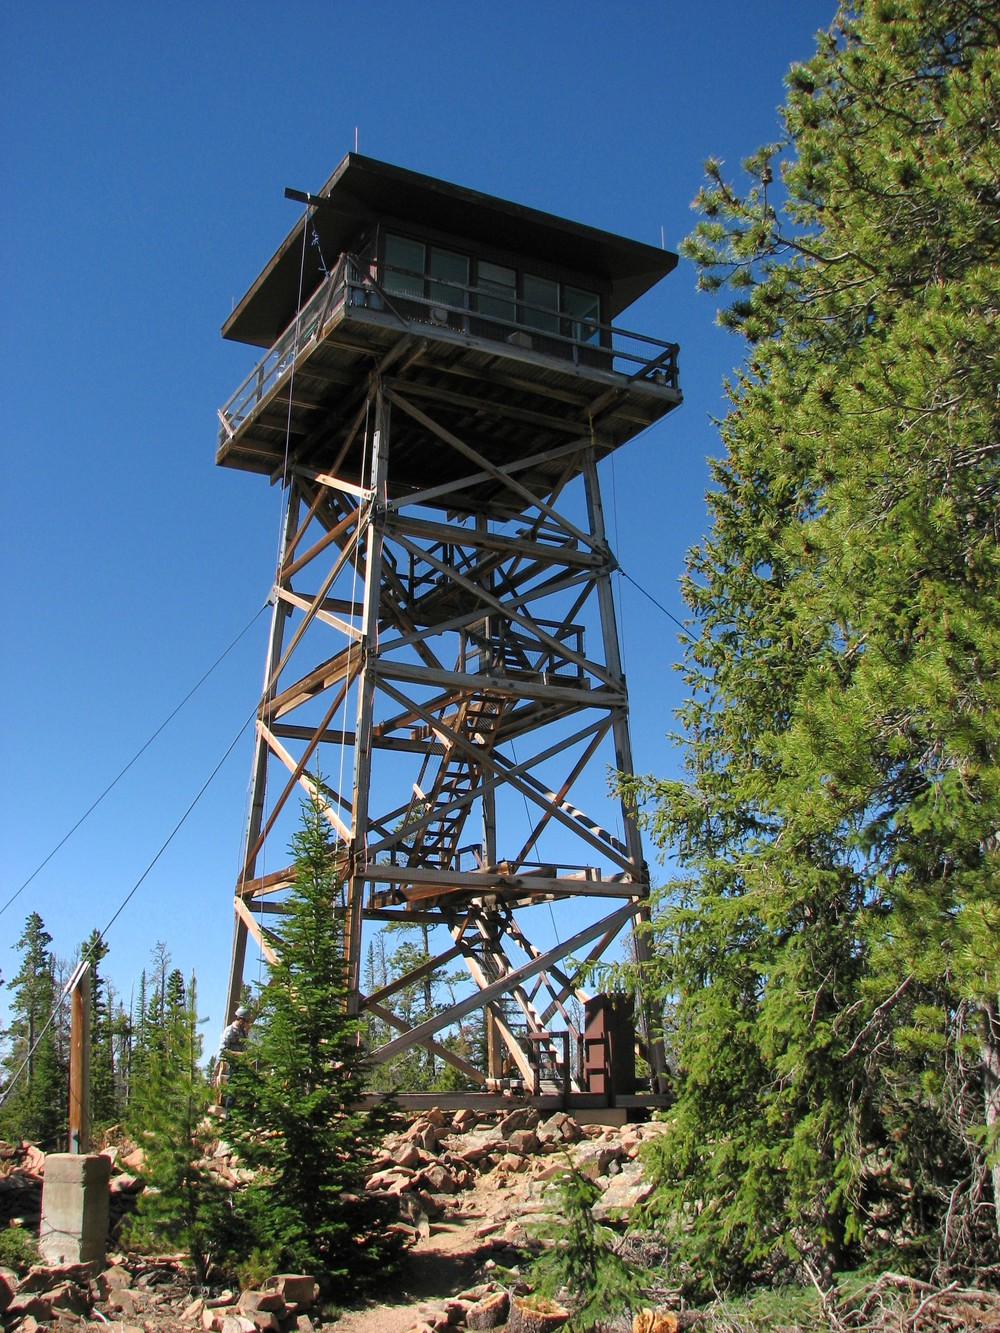 Fire lookout towers are one of several historic resources that exist on public lands in the west. Photo credit: U.S. Forest Service